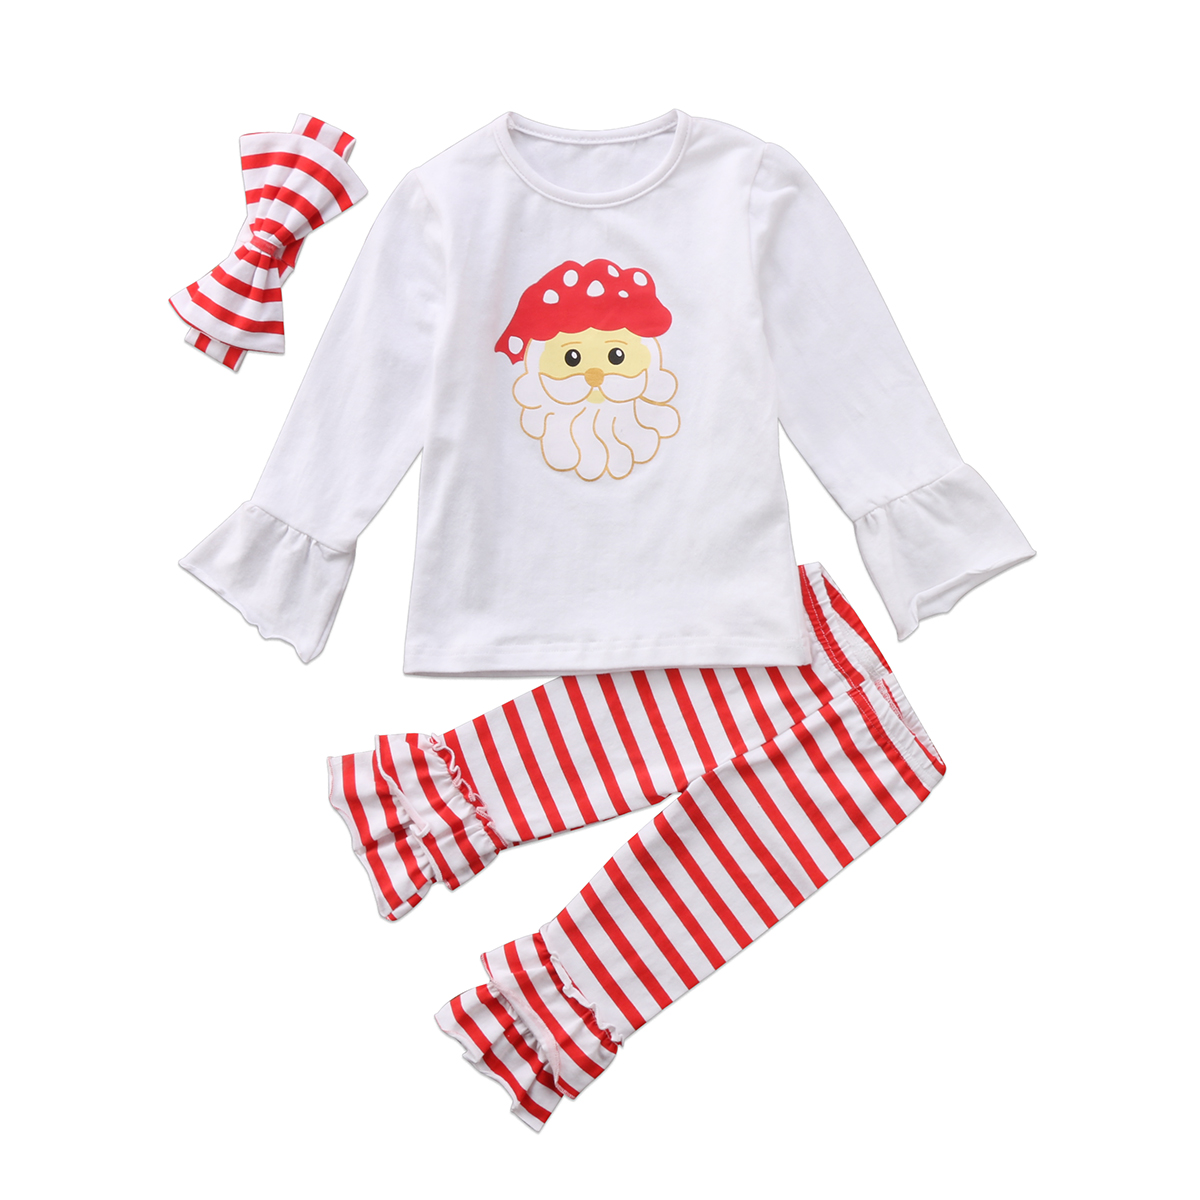 3PCS Christmas Infant Kids Baby Girl Top Dress Pants Headband Outfit Set Clothes Kids Baby Girl Christmas Clothes Set newborn baby girl clothes set 3pcs kid party my first christmas cotton bodysuit sequin bowknot tulle tutu skirt headband outfit